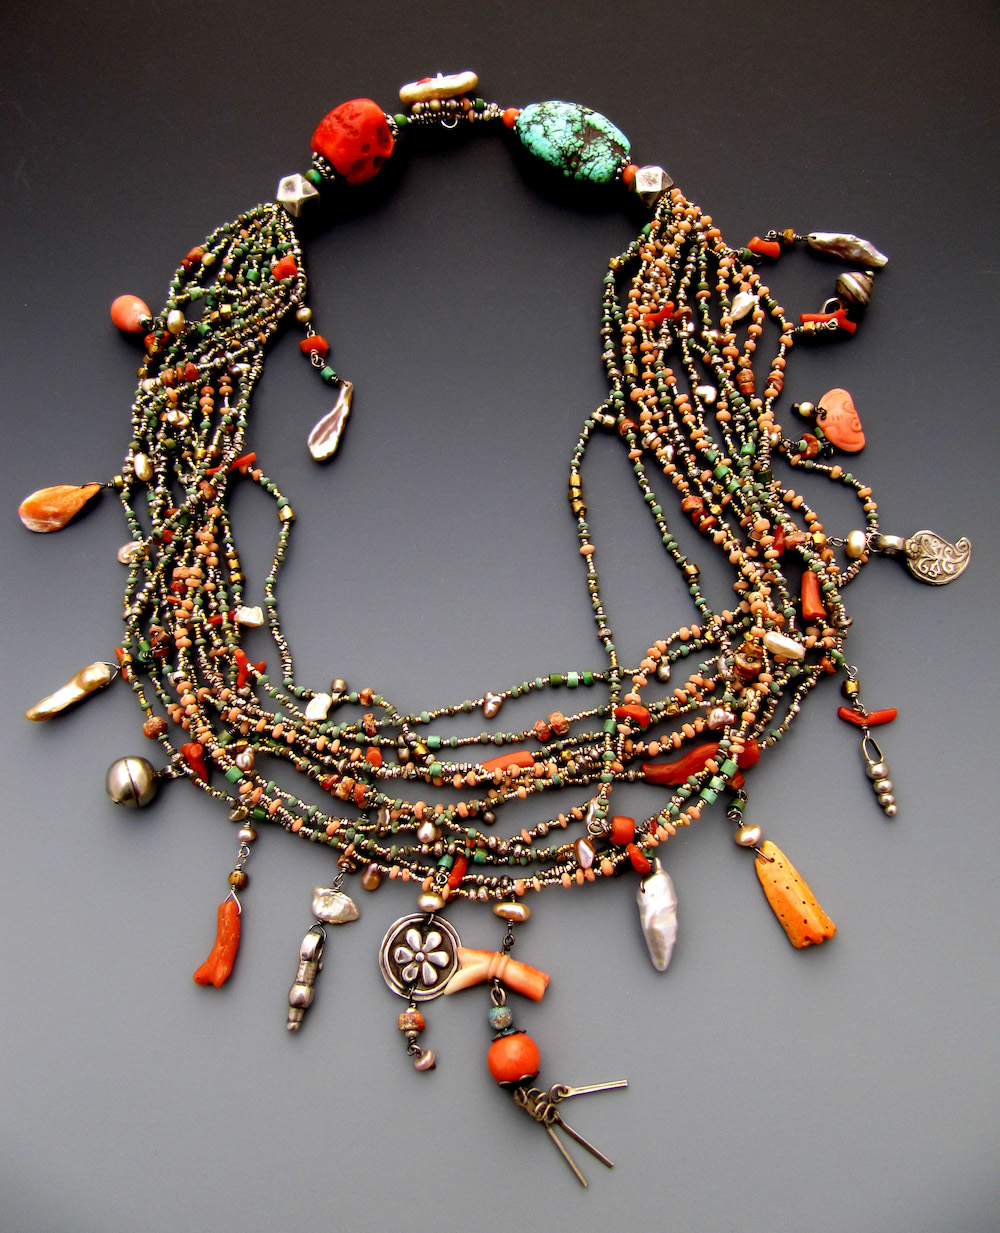 An example of Lucia Antonelli's beaded jewelry.